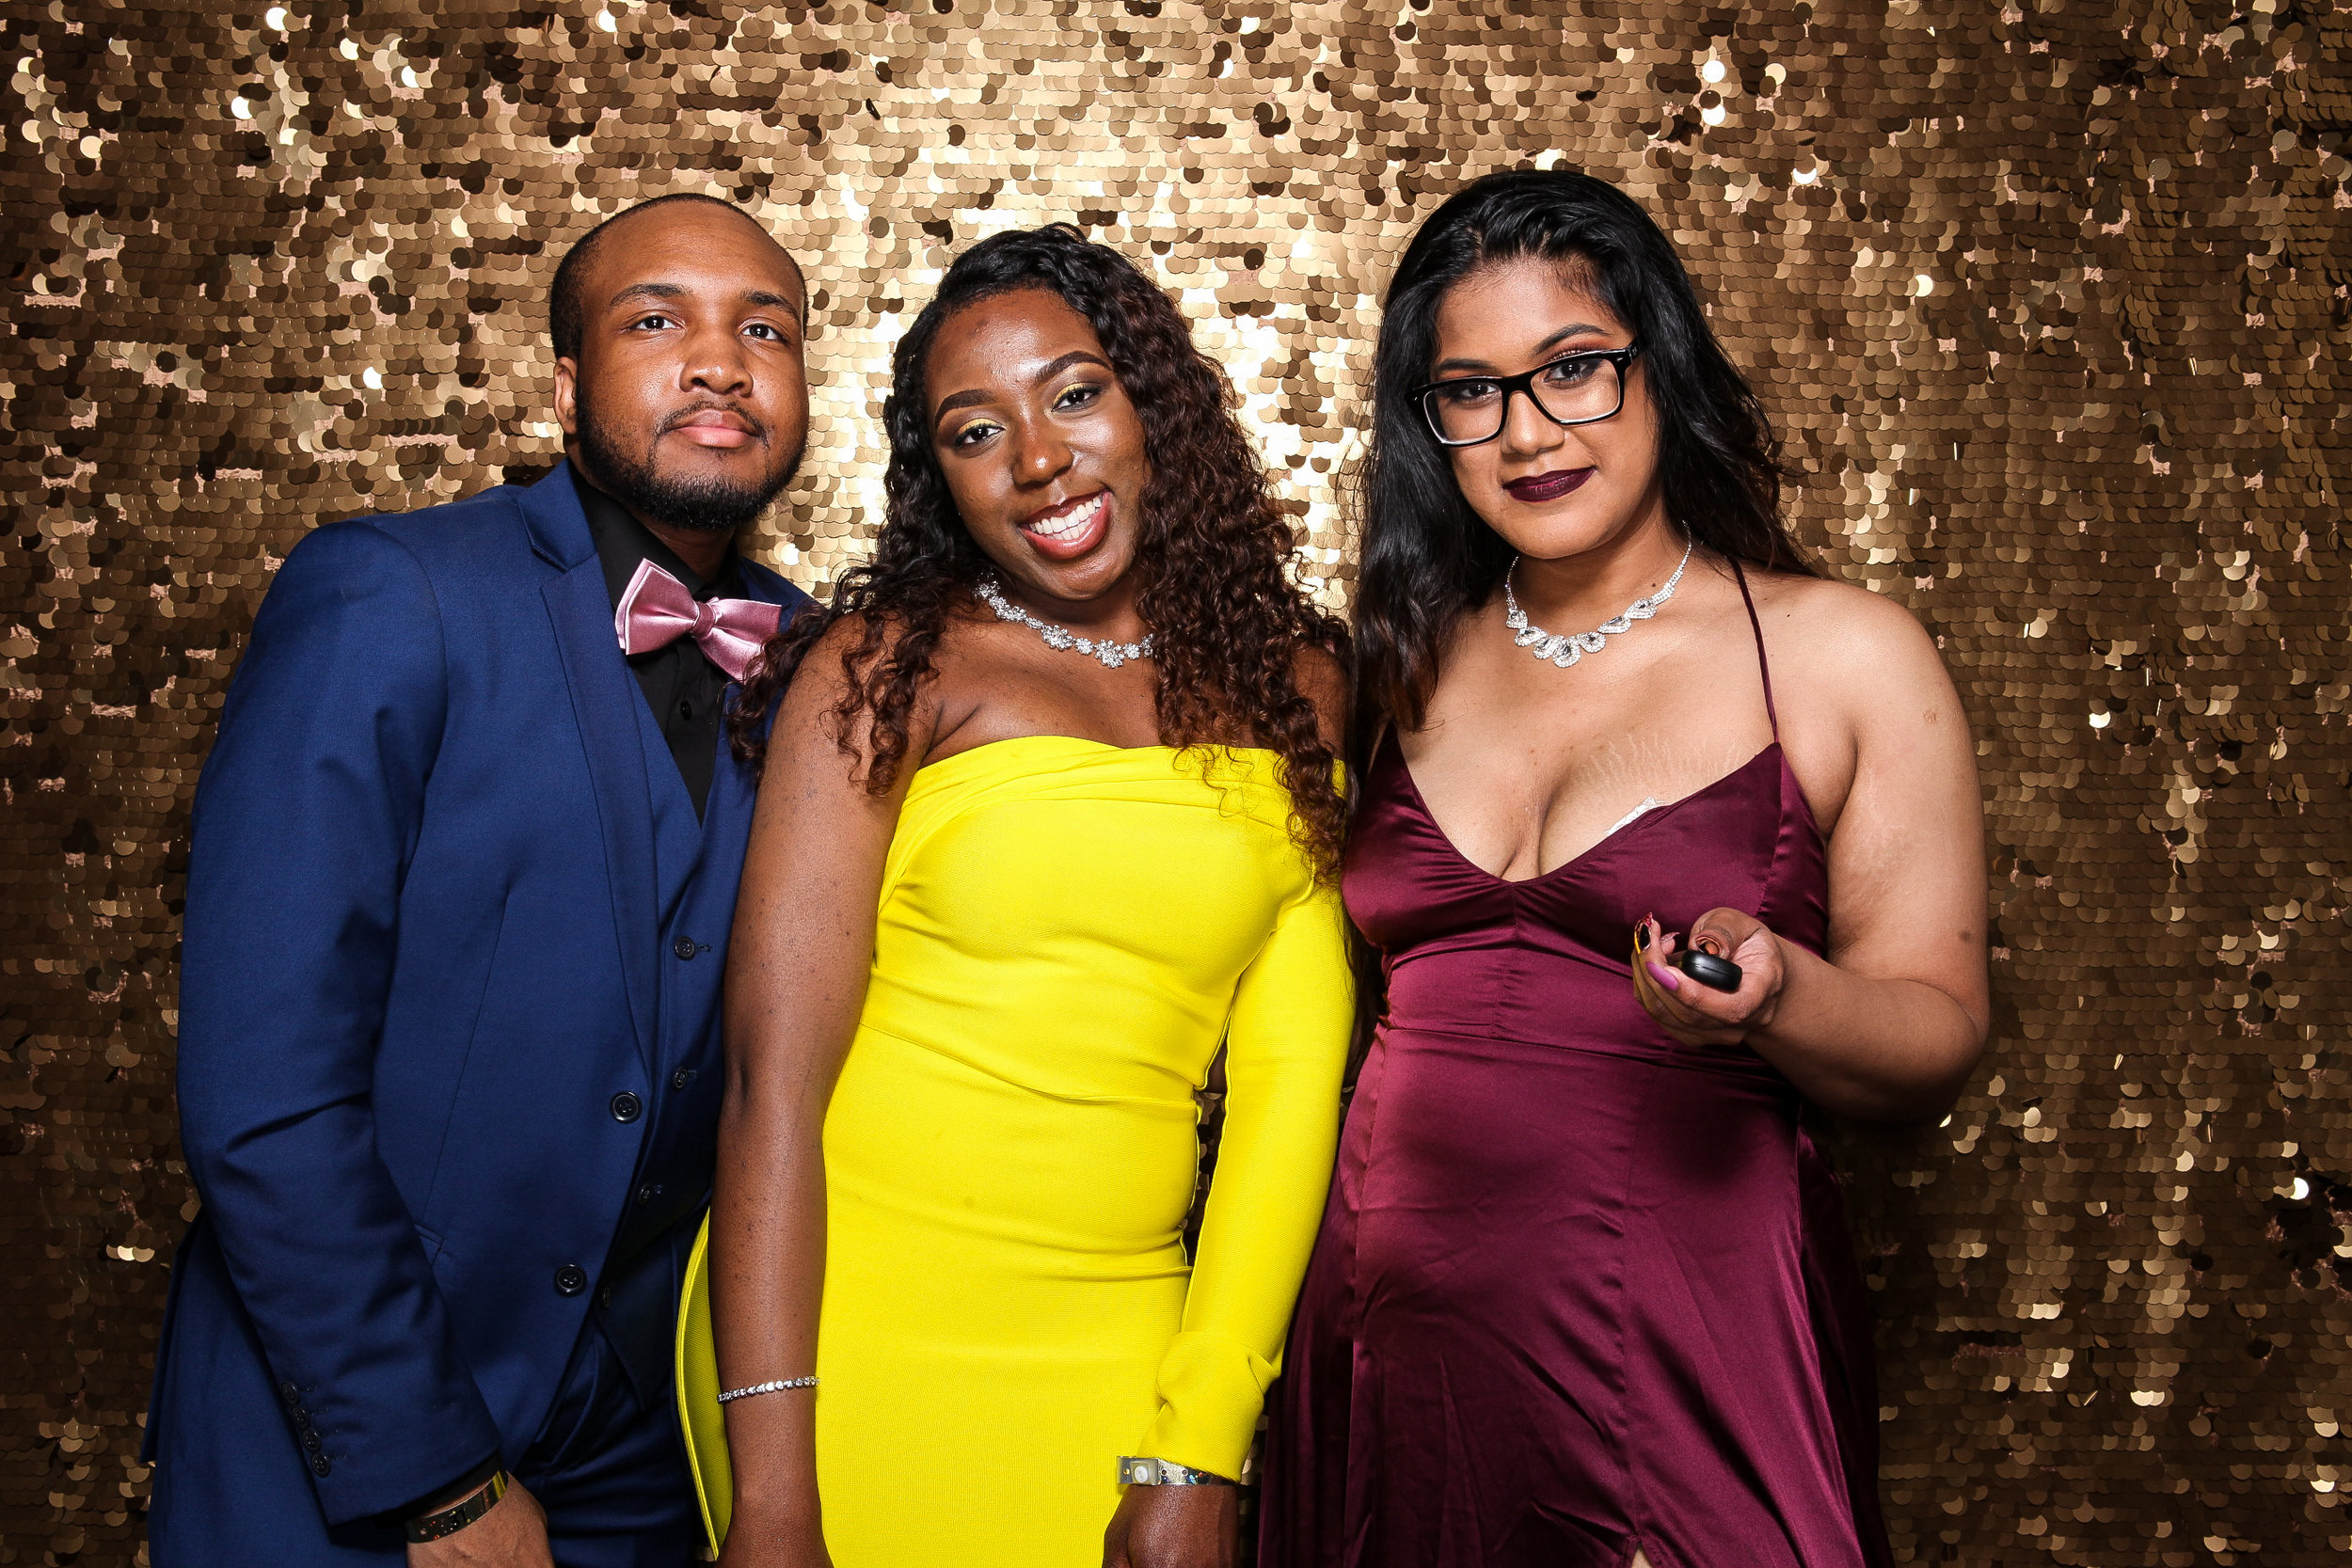 20190503_Adelphi_Senior_Formal-224.jpg